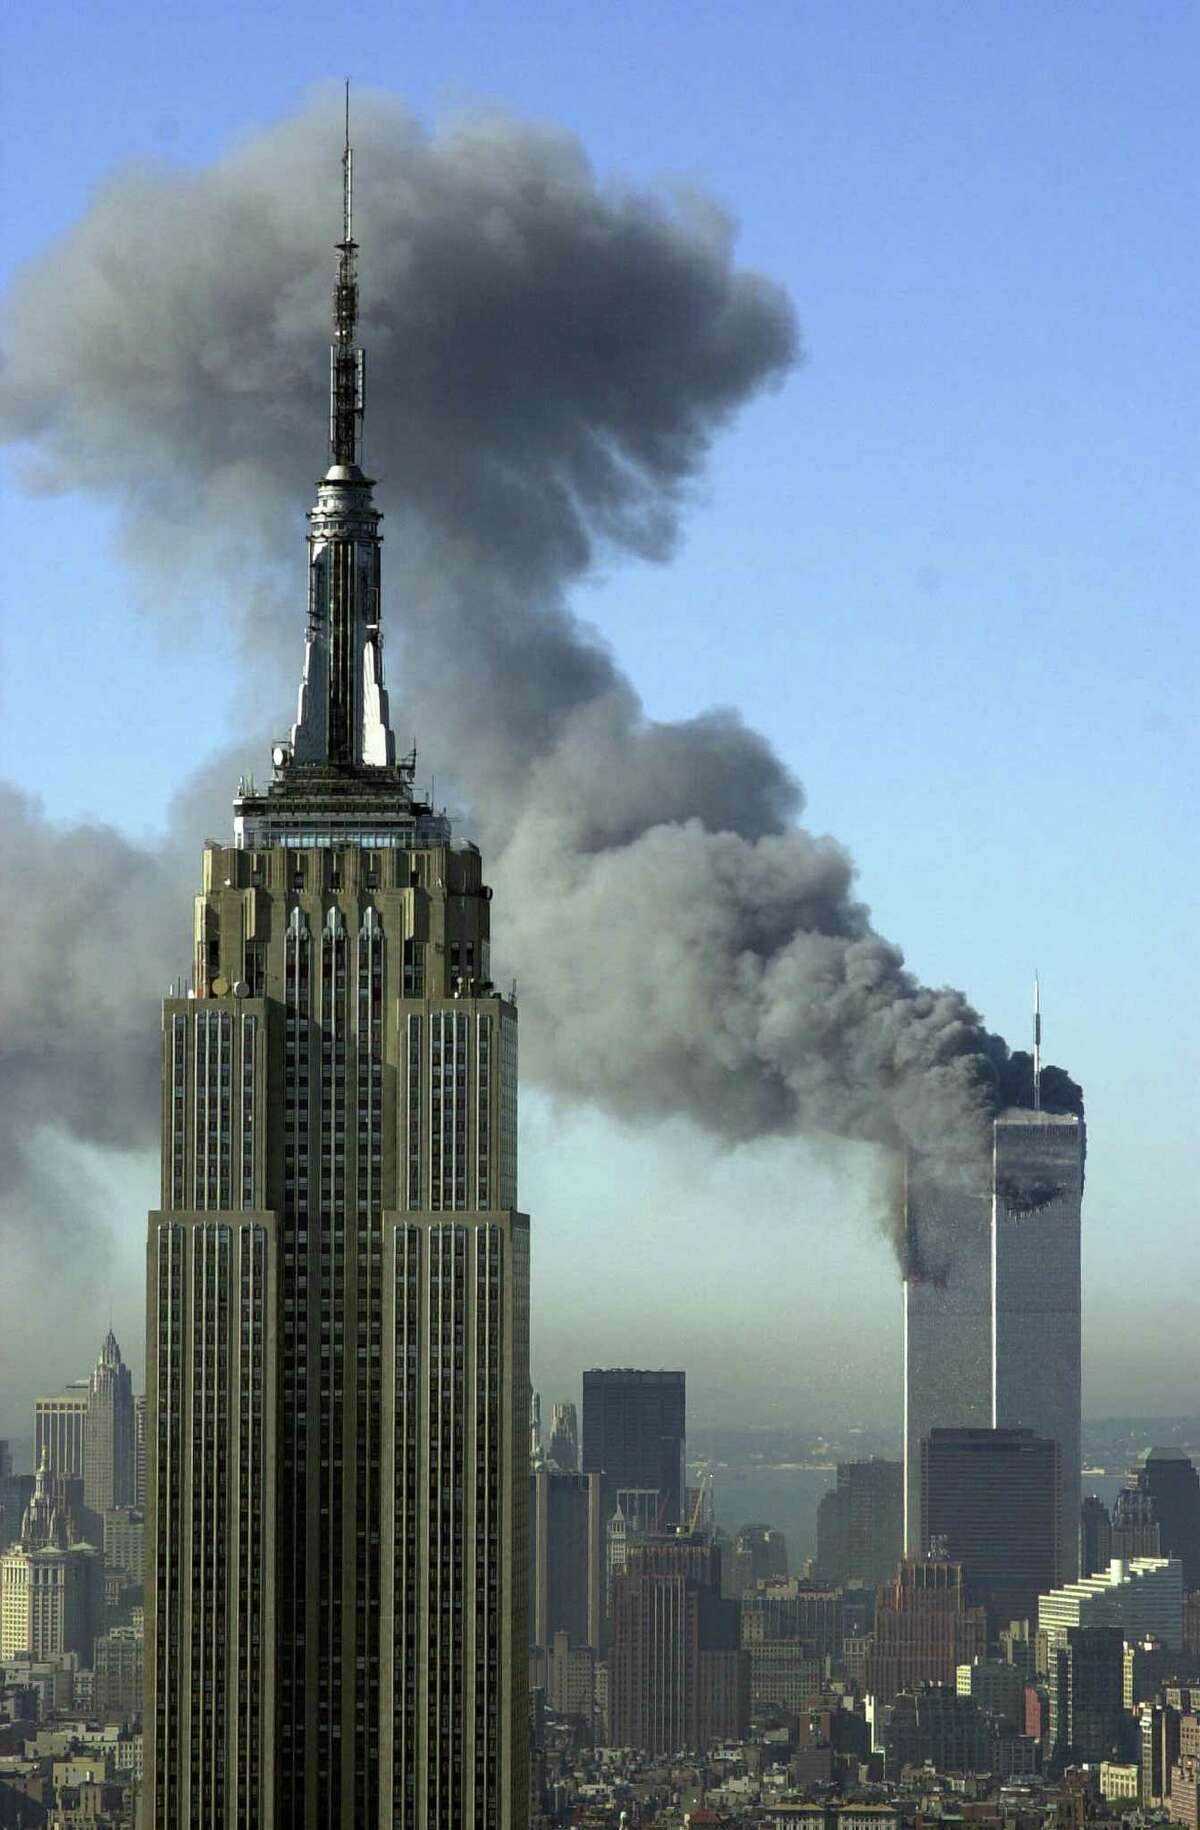 FILE - In this Tuesday, Sept. 11, 2001 file photo, plumes of smoke rise from the World Trade Center buildings in New York. The Empire State building is seen in the foreground. For years, a handful of current and former American officials have been urging President Barrack Obama to release secret files that they believe document links between the government of Saudi Arabia and the terrorist attacks of September 11, 2001. Other officials, including the executive director of the 9-11 commission, have said the classified documents don?'t prove that the Saudi government knew about or financed the attacks_and that making them public would fuel bogus conspiracy theories. (AP Photo/Patrick Sison, File) ORG XMIT: WX102